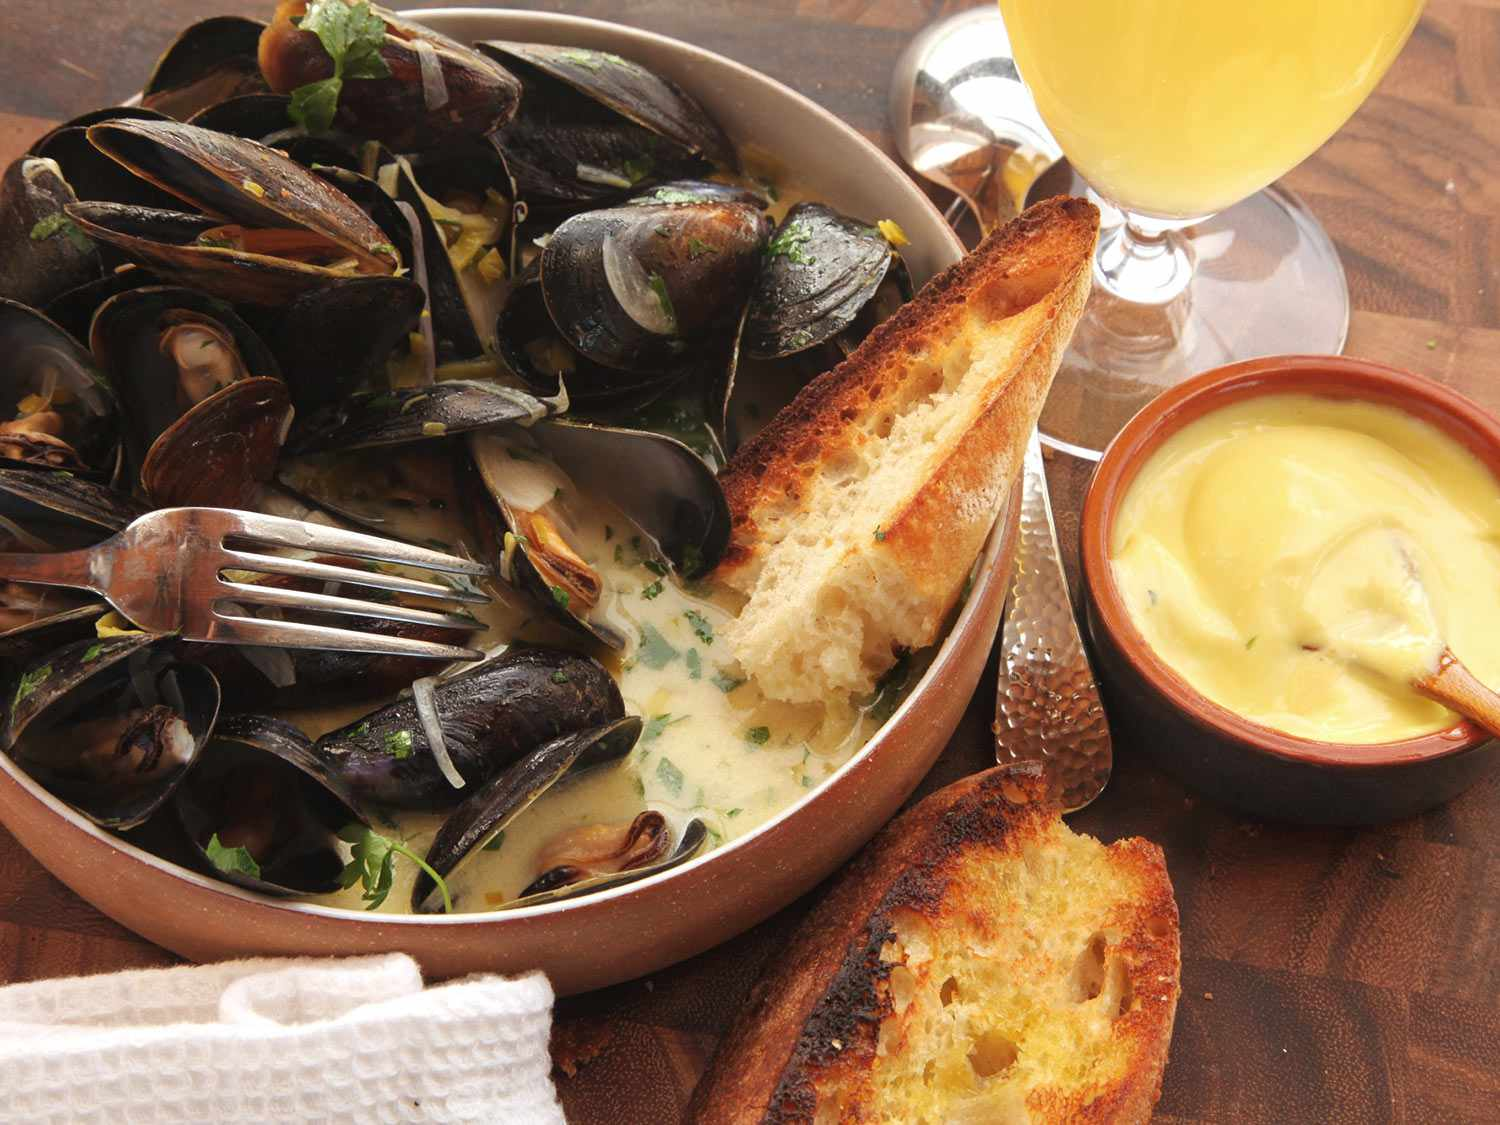 20171016-french-recipes-roundup-05.jpg